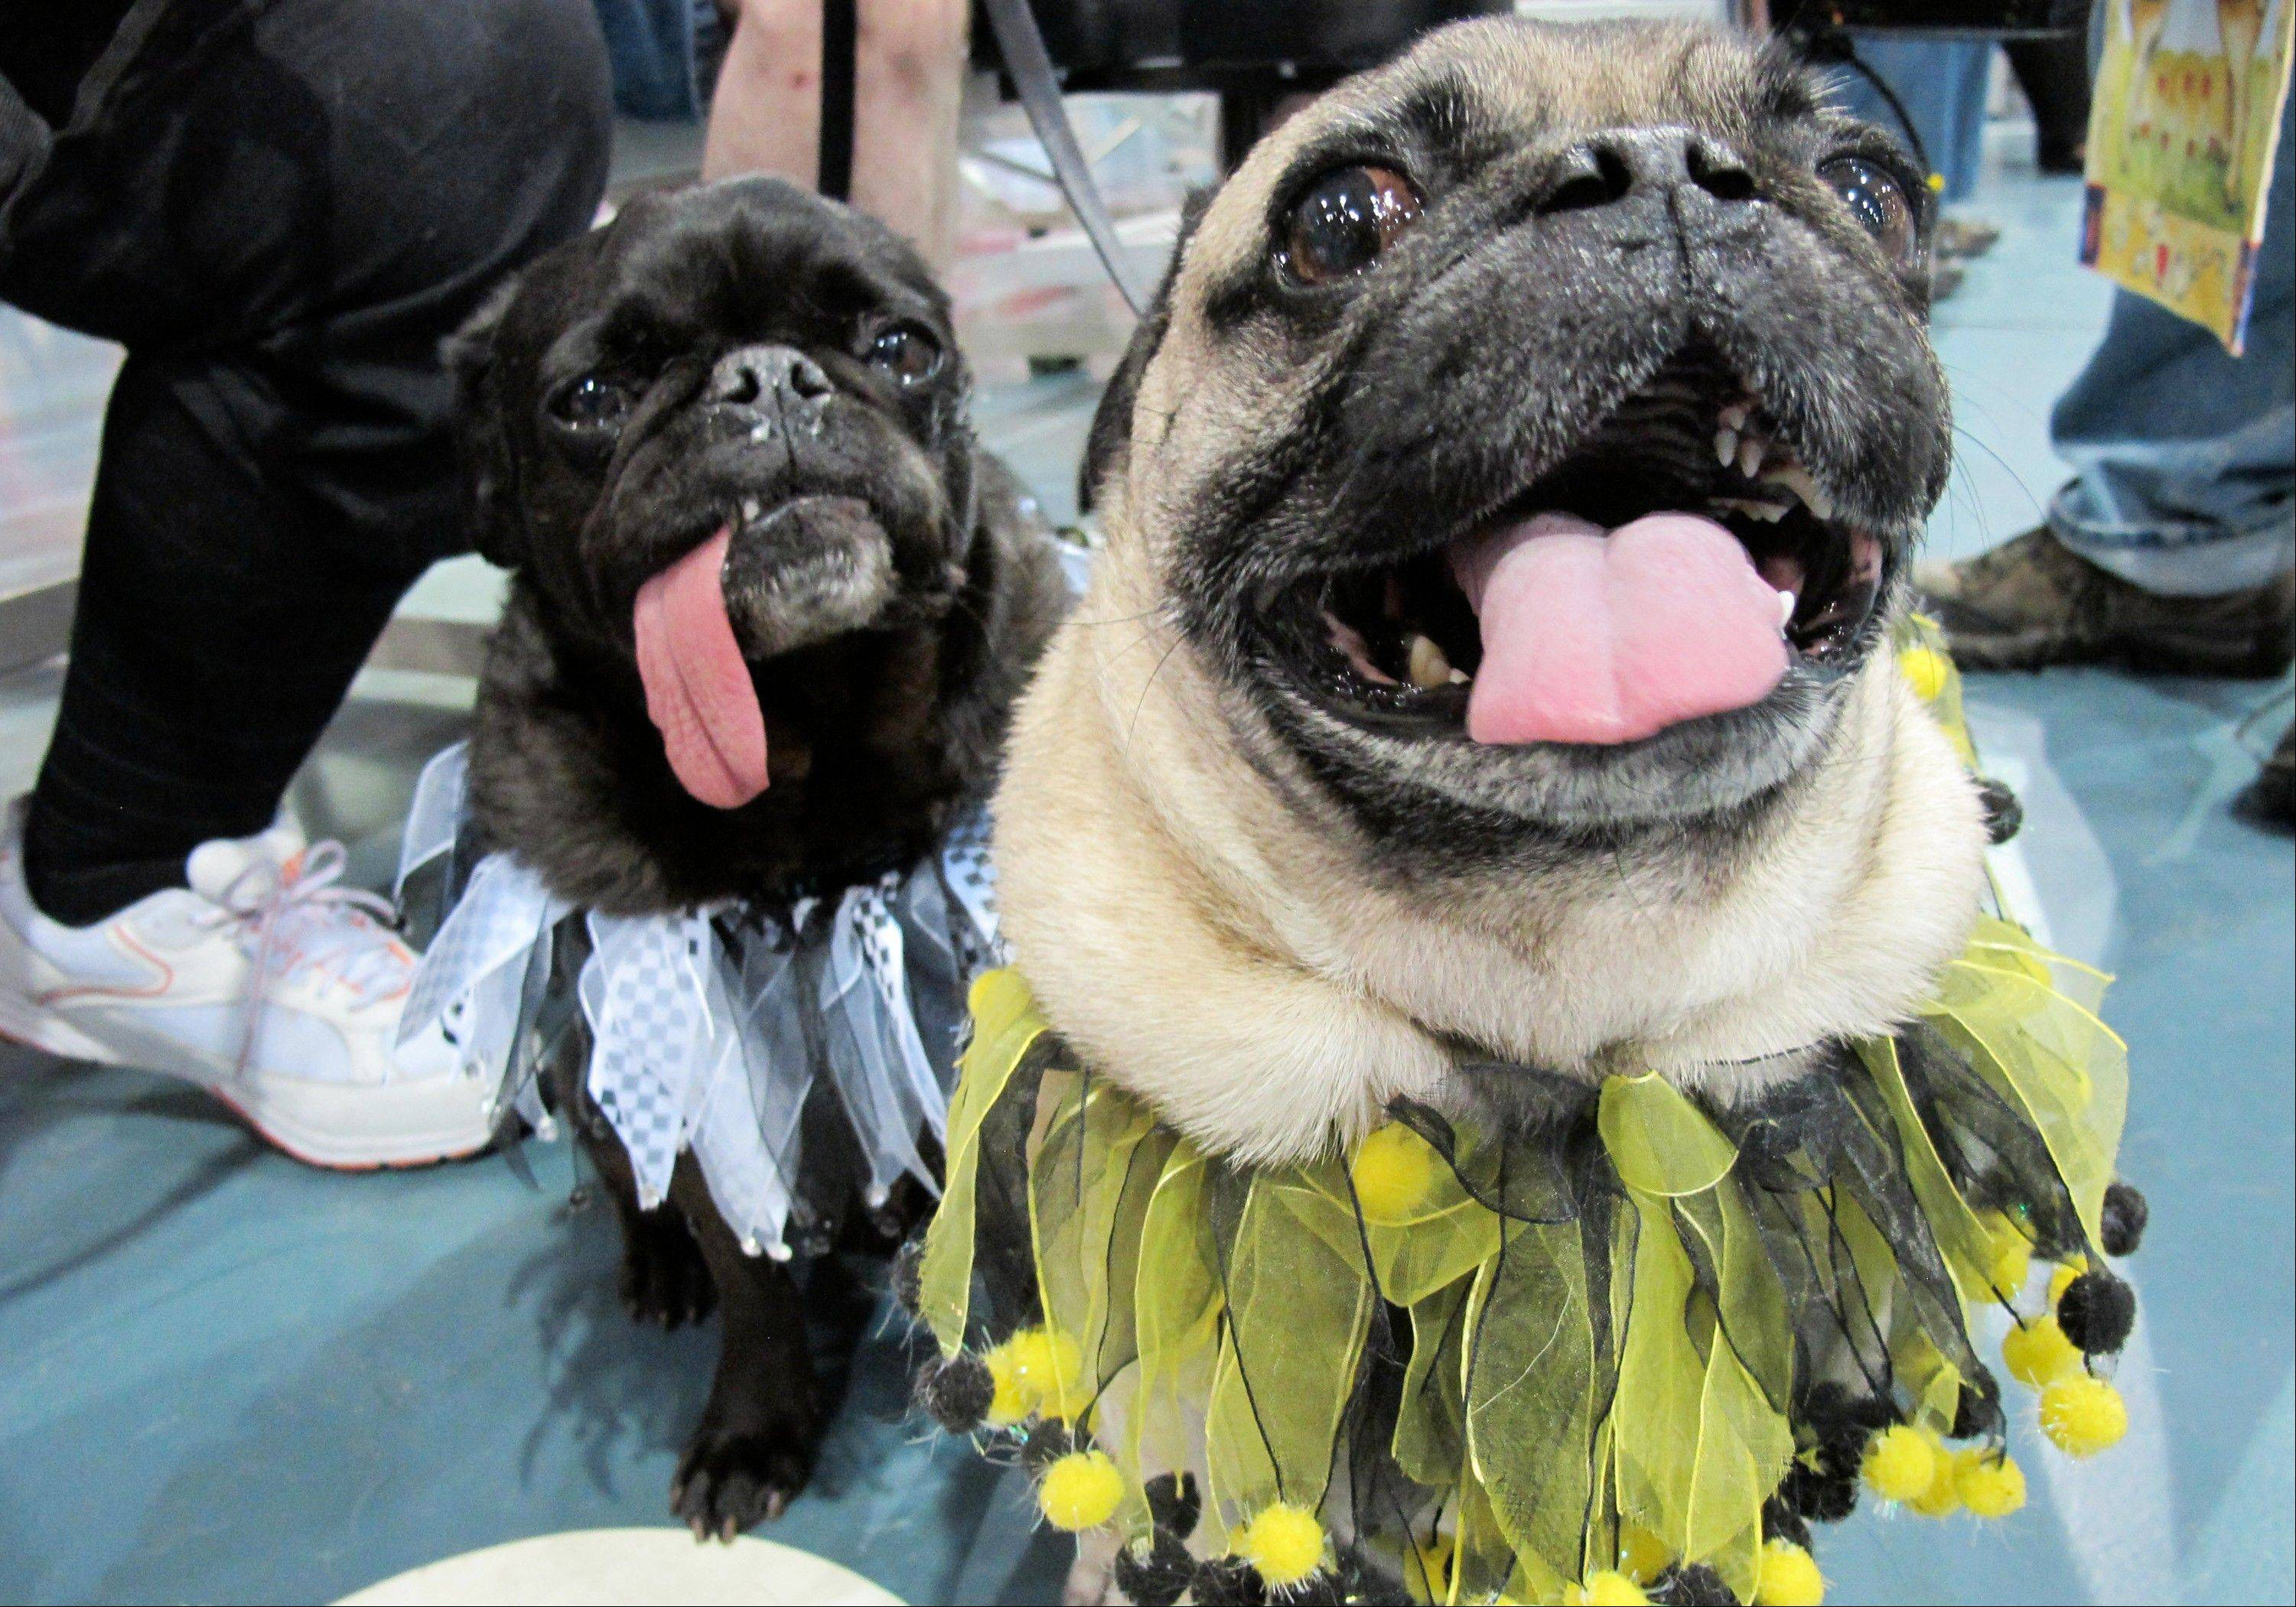 Chipper, right, and Chickory pose for a photo at the Milwaukee Pug Fest in Franklin, Wis.